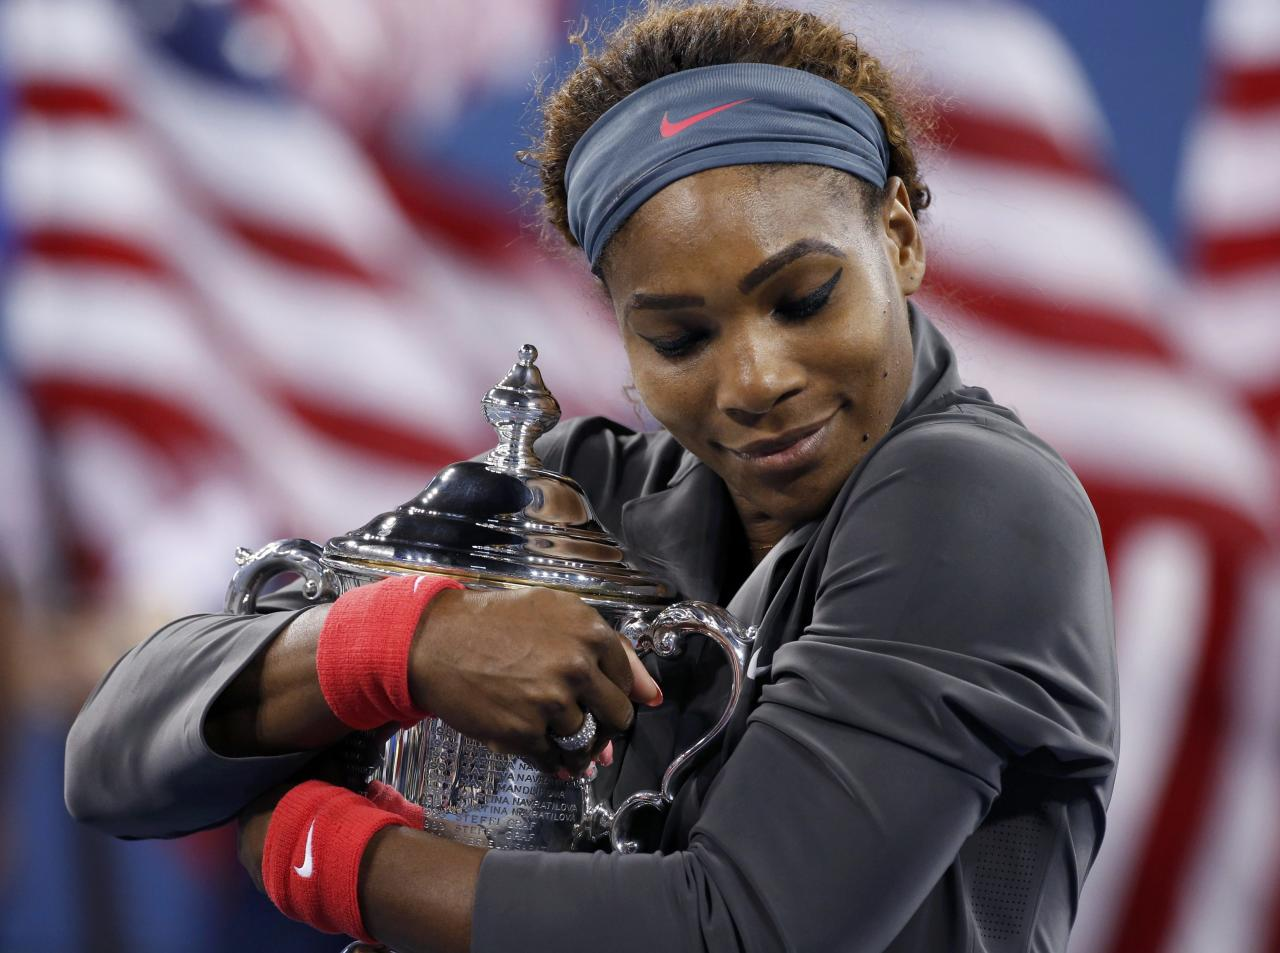 Serena Williams of the U.S. embraces her trophy after defeating Victoria Azarenka of Belarus in their women's singles final match at the U.S. Open tennis championships in New York September 8, 2013. REUTERS/Mike Segar (UNITED STATES - Tags: SPORT TENNIS)